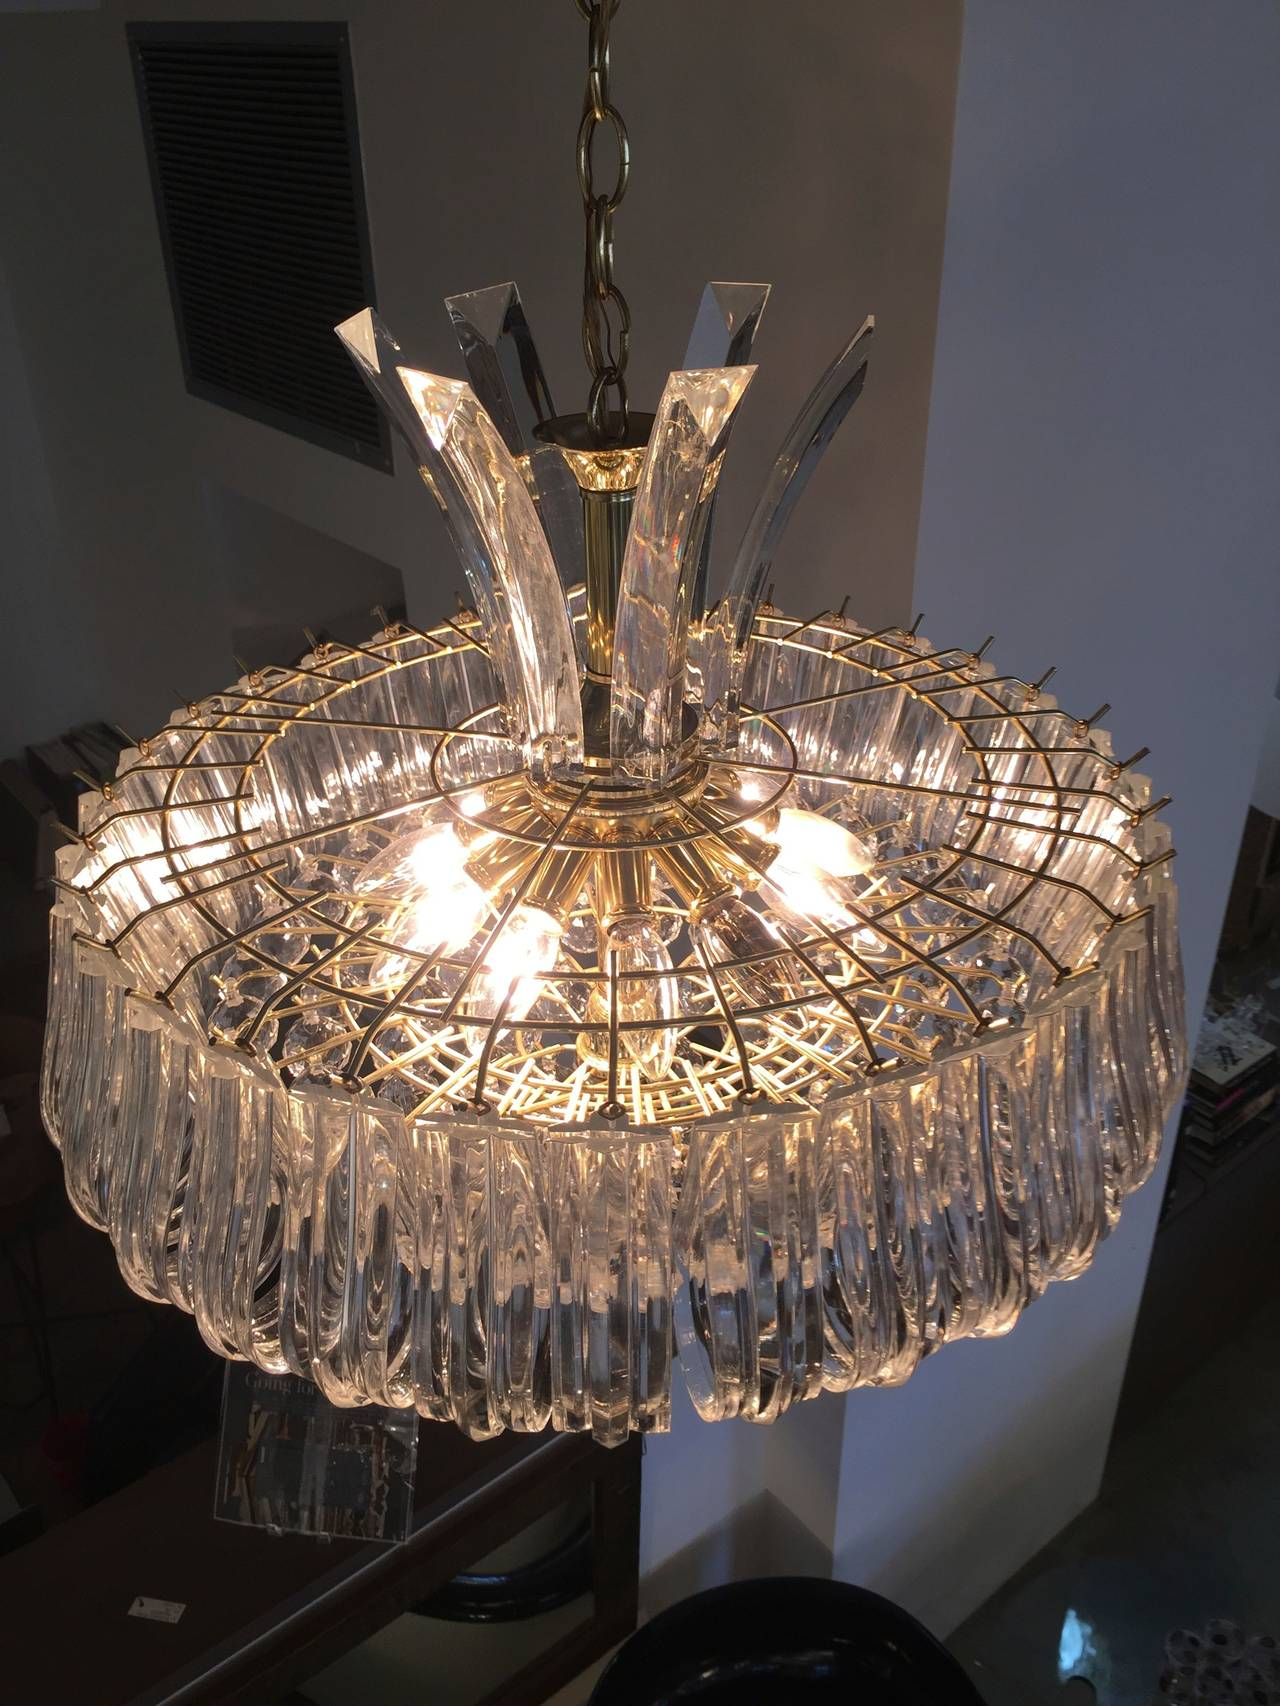 Mid century modern triarch lucite and brass chandelier for sale at mid century modern triarch lucite and brass chandelier for sale at 1stdibs arubaitofo Gallery